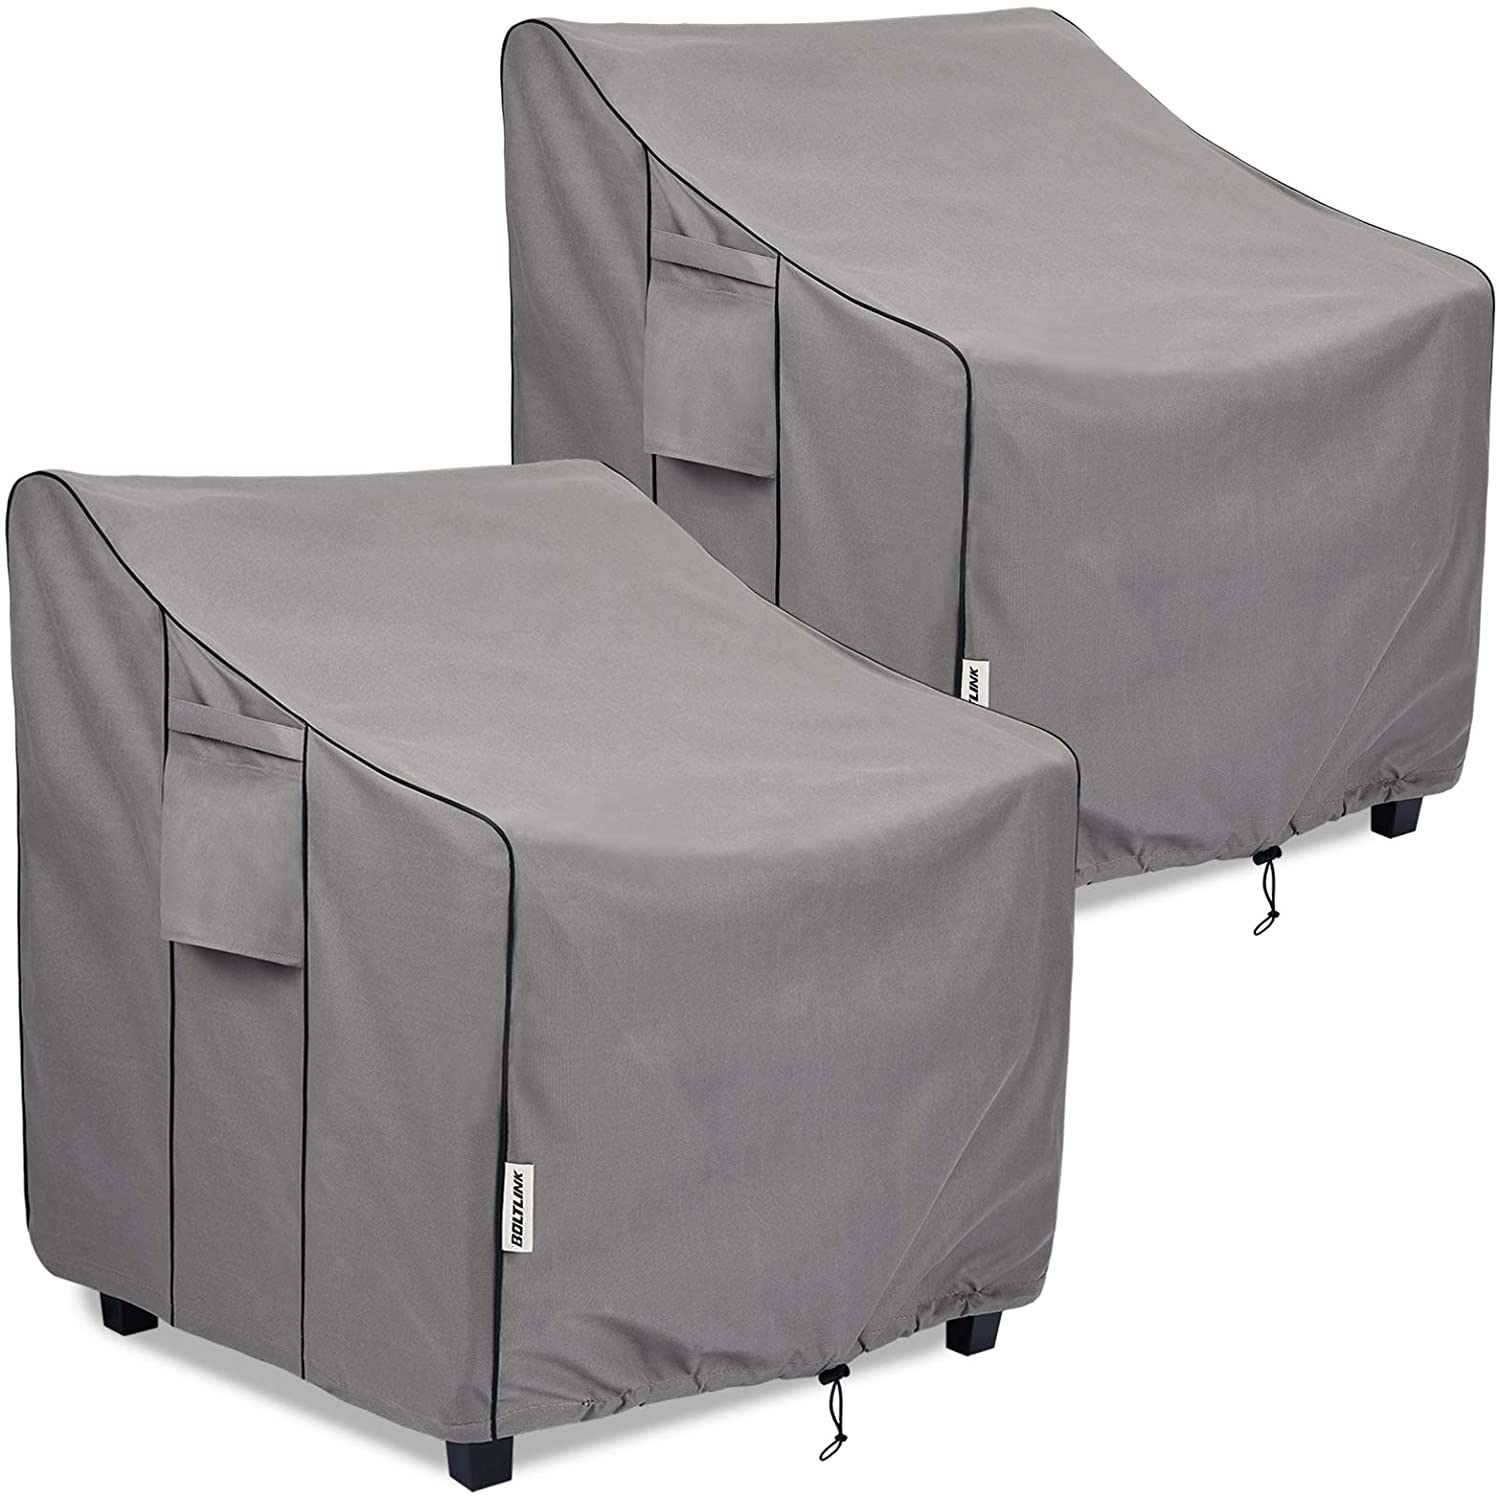 BOLTLINK Patio Chair Covers Waterproof, Heavy Duty Outdoor Furniture Covers Fits up to 35W x 38D x 31H inches -2 Pack